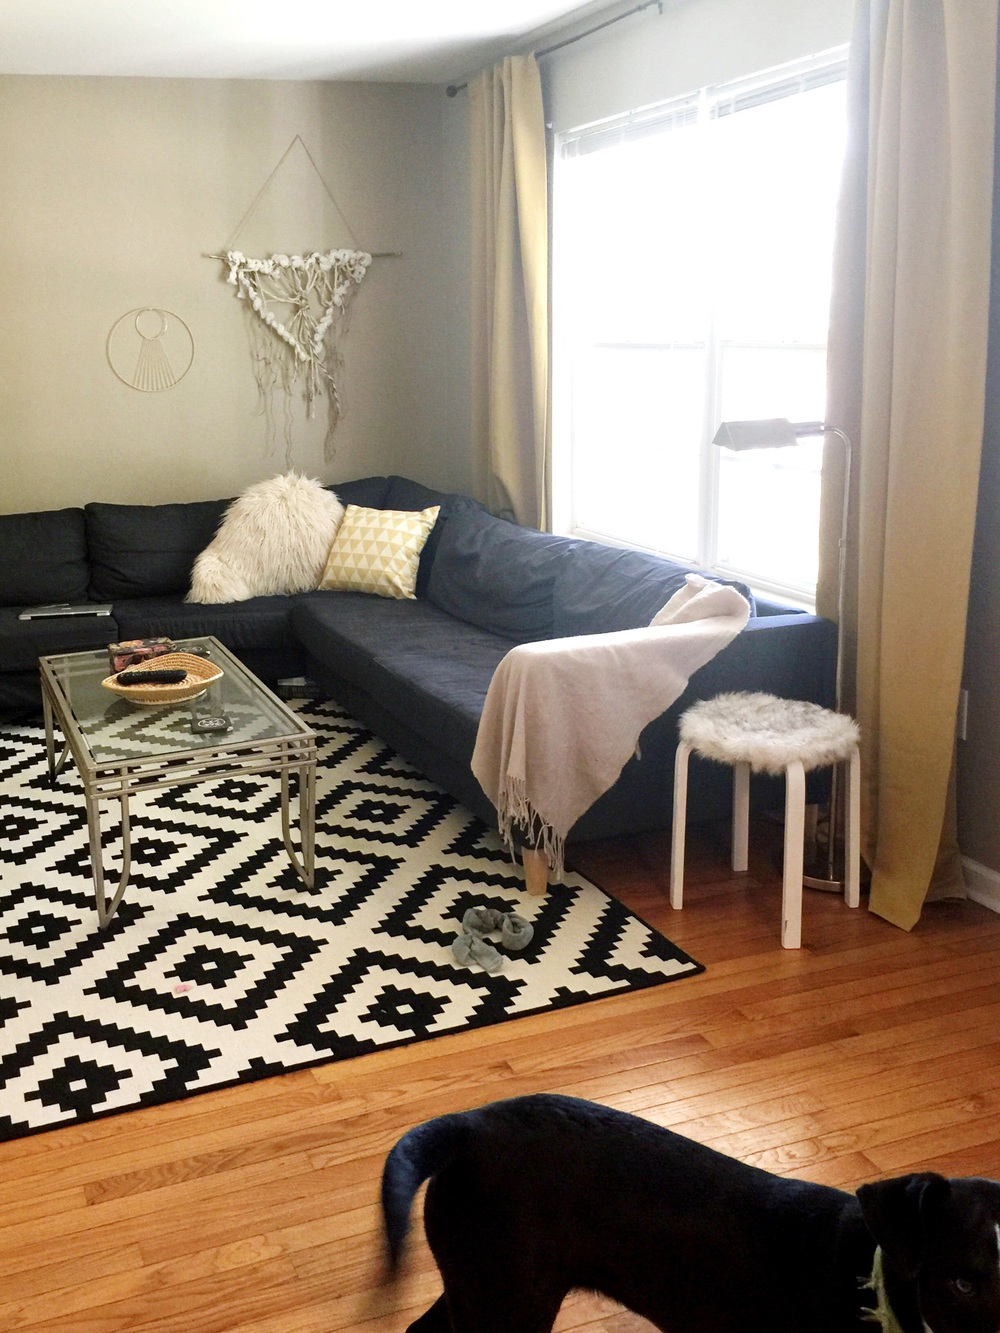 This room isn't too much of a problem for us. Obviously, the rug is not ideal and we're going to buy an actual beautiful coffee table, as well as plain white curtains and all white accents. Lots of plants.